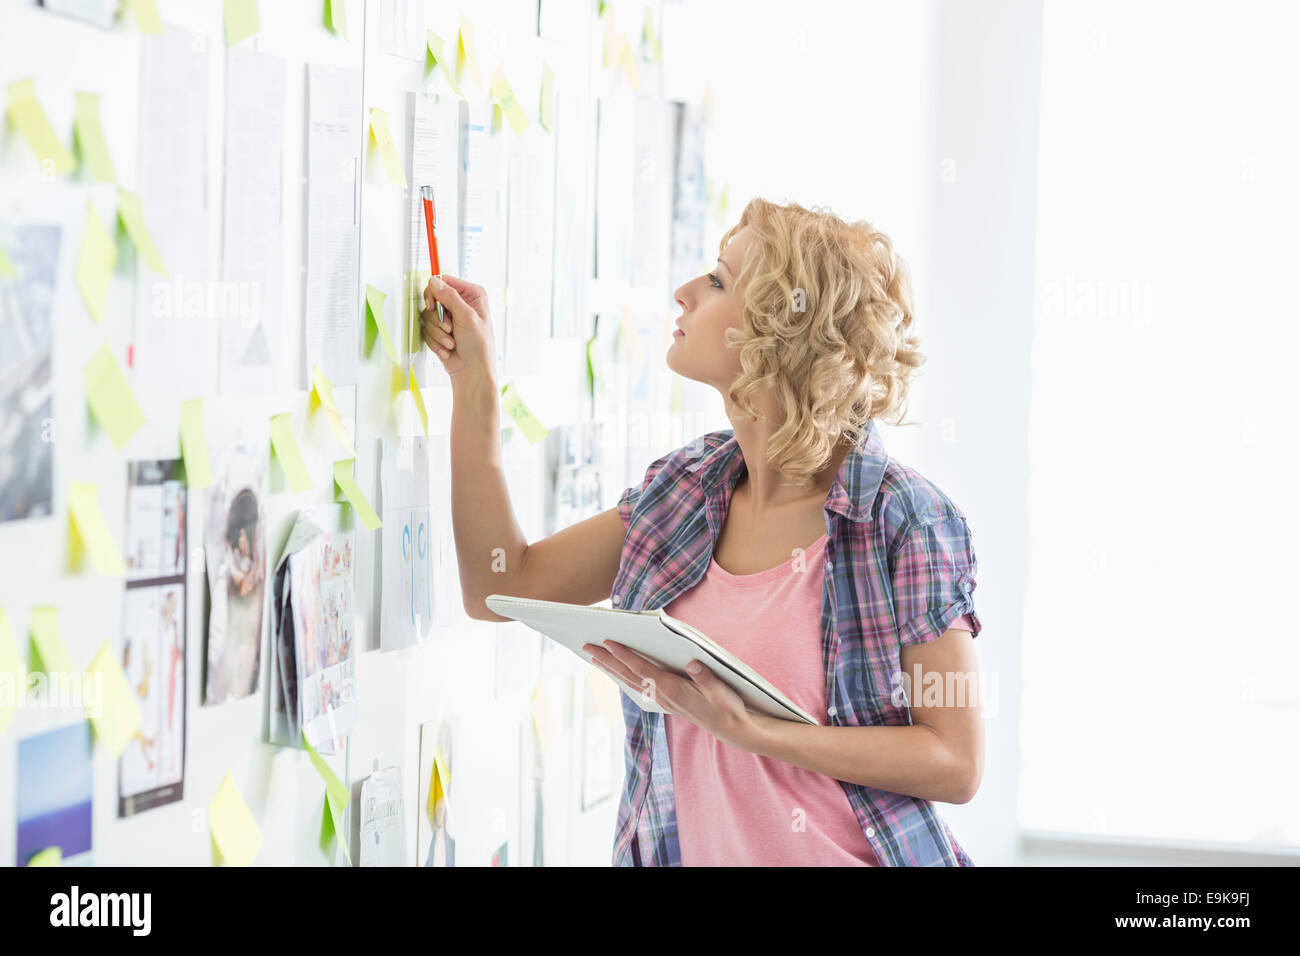 Creative businesswoman analyzing papers stuck on wall in office - Stock Image